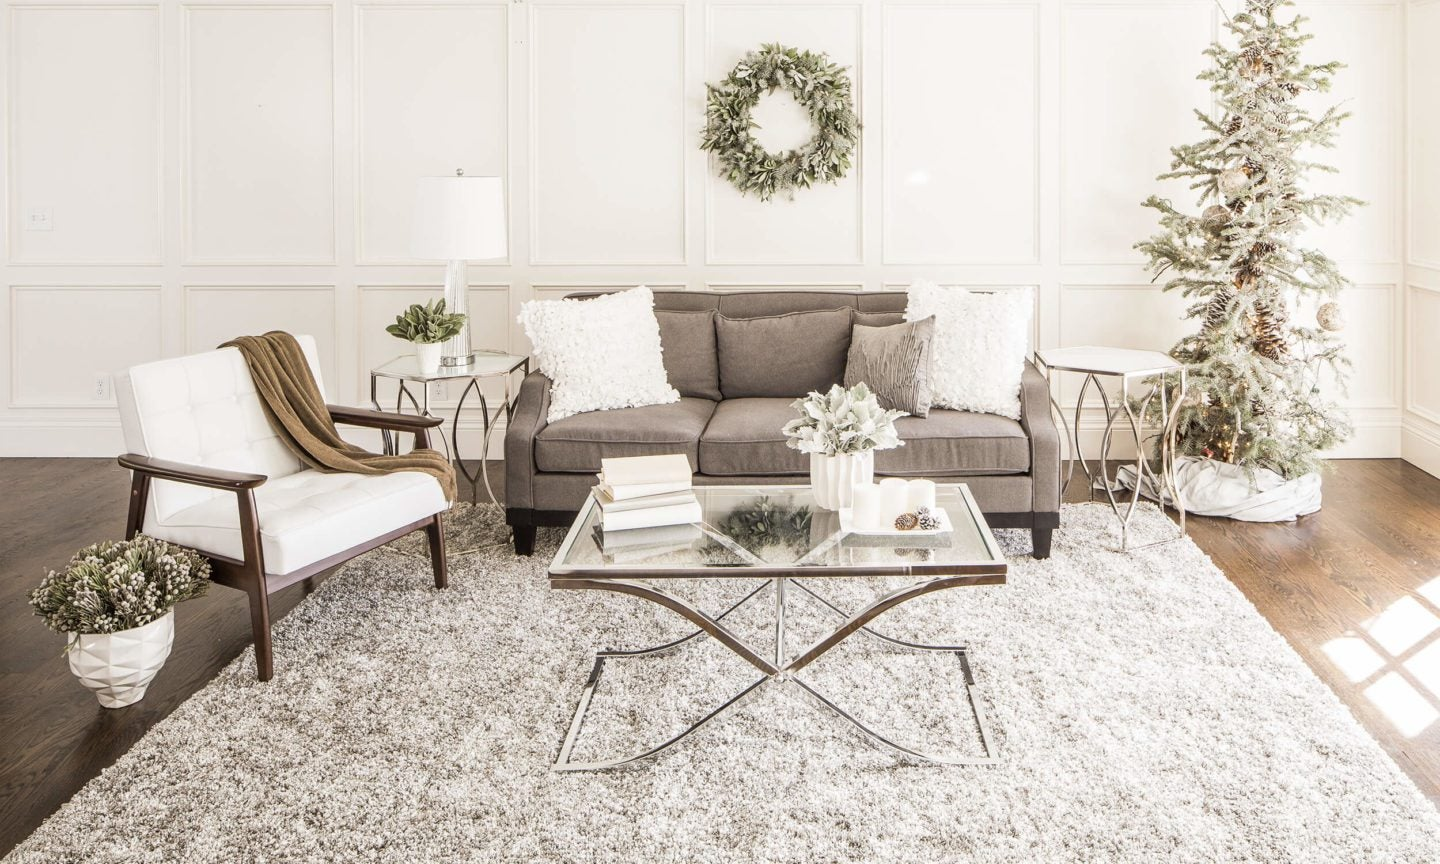 Glam home with Christmas decoartions